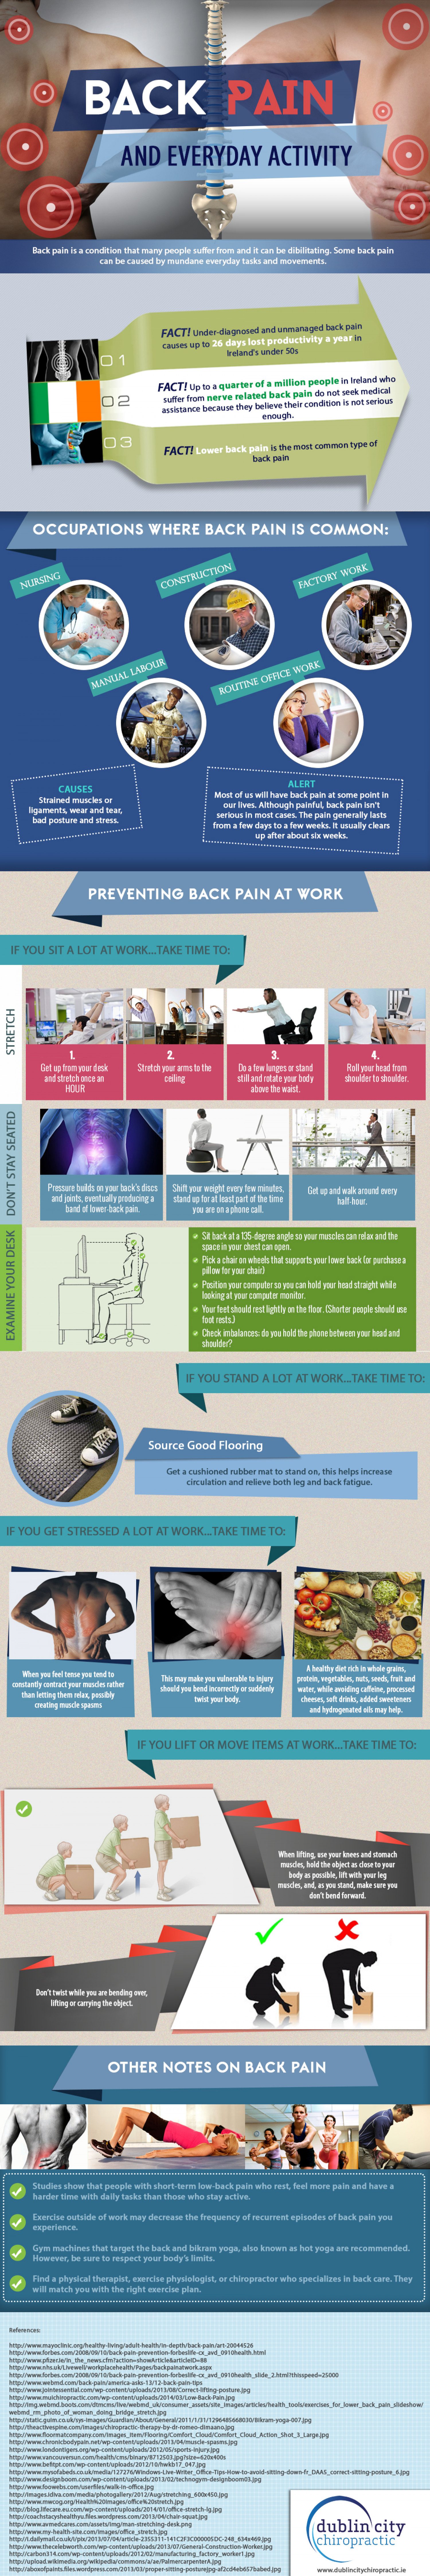 Back Pain and Everyday Activity Infographic